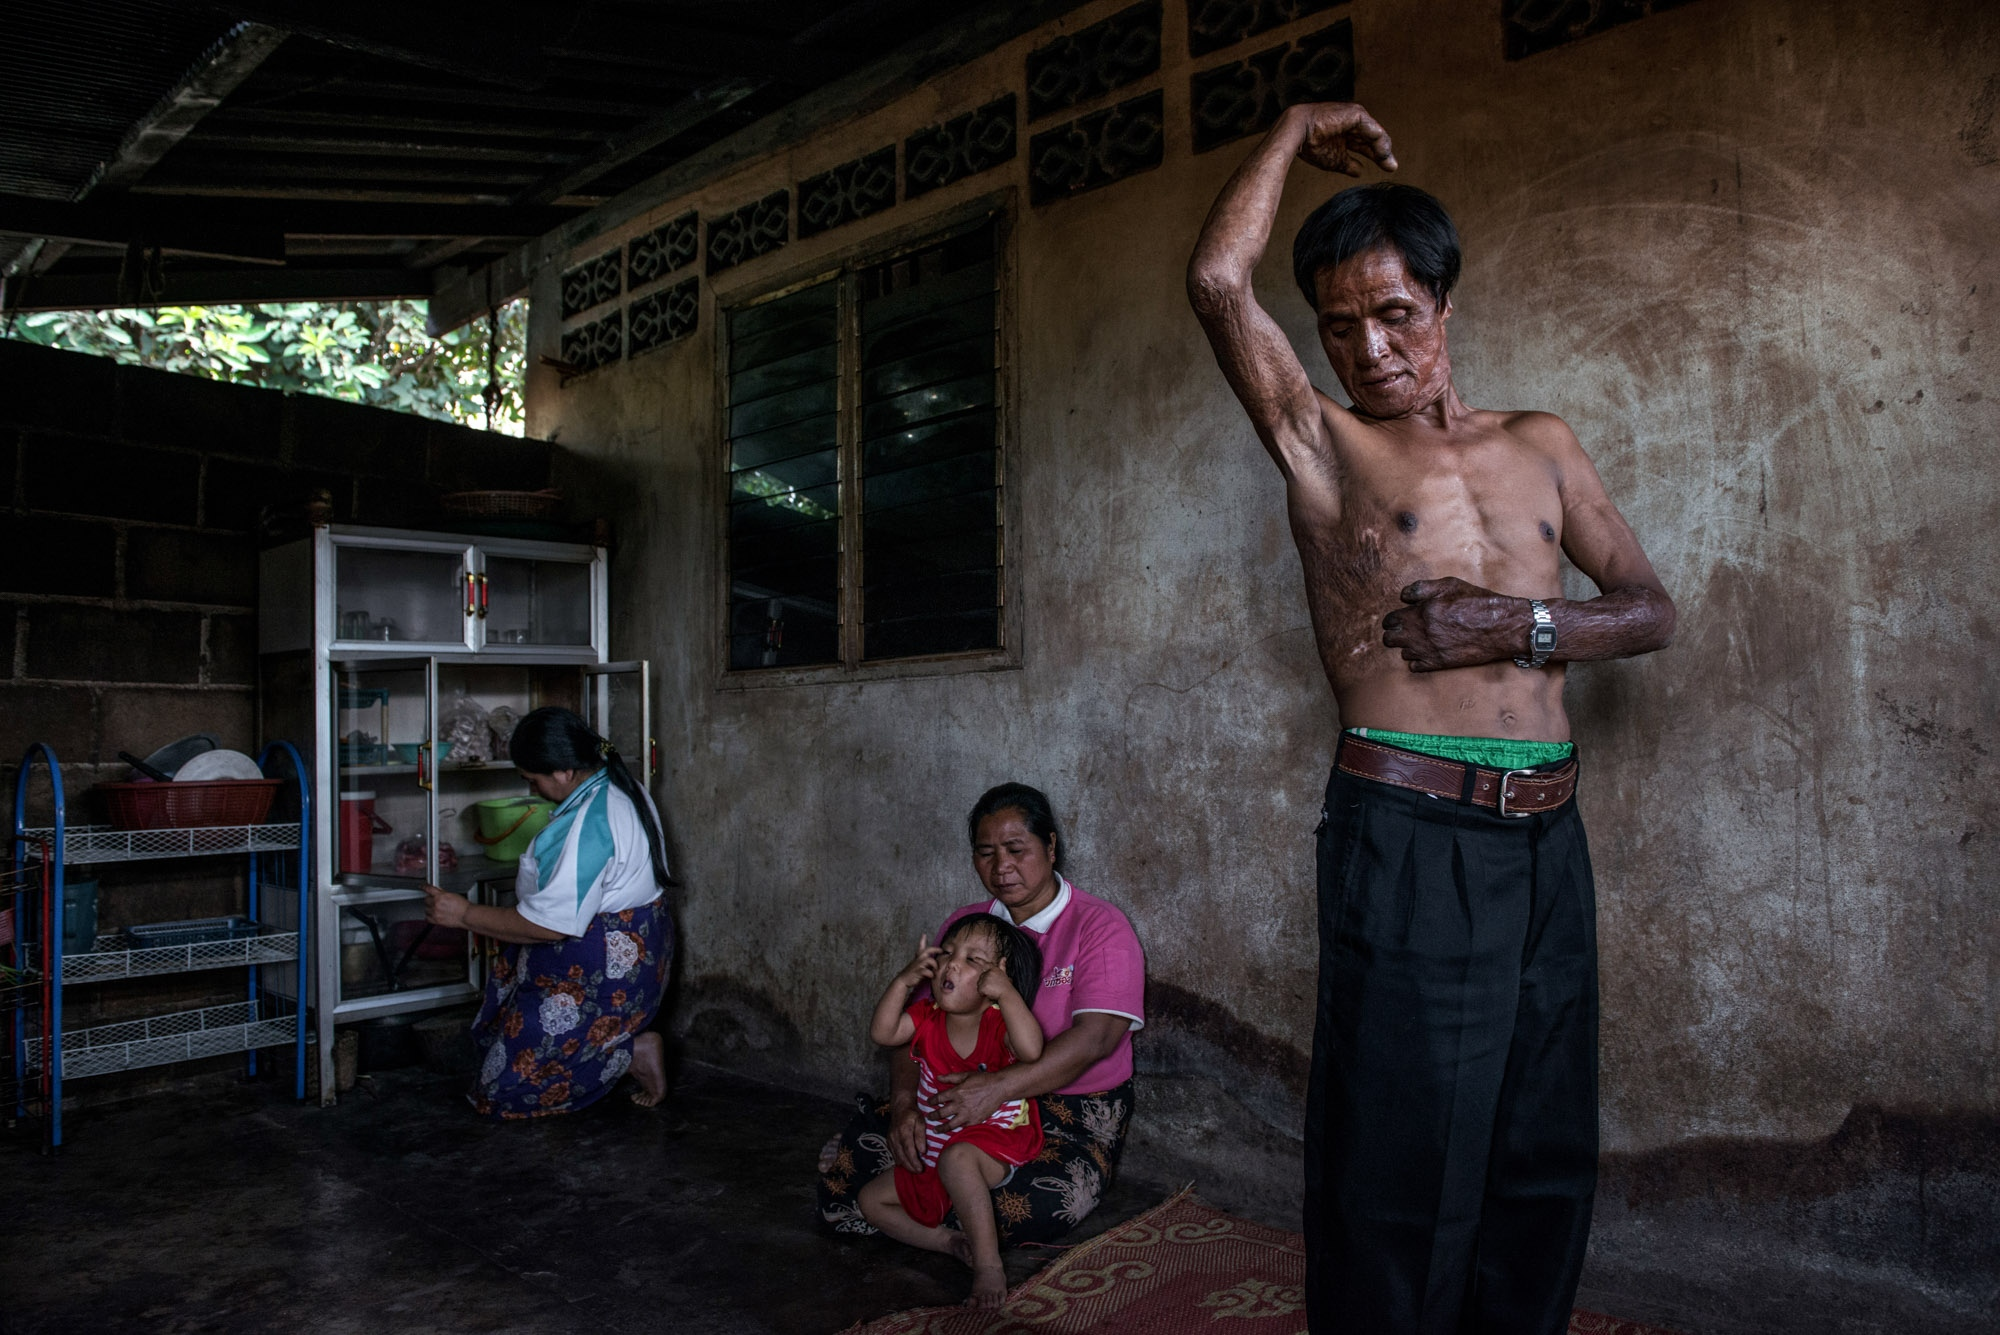 Moshe, a Lahu hill tribe people who once worked as a firefighter. During a fierce firefighting operation, his hands had suffered burns in a dangerous undertaking that left him disabled. After becoming a person with disability, his life has to only cling to the social welfare system.